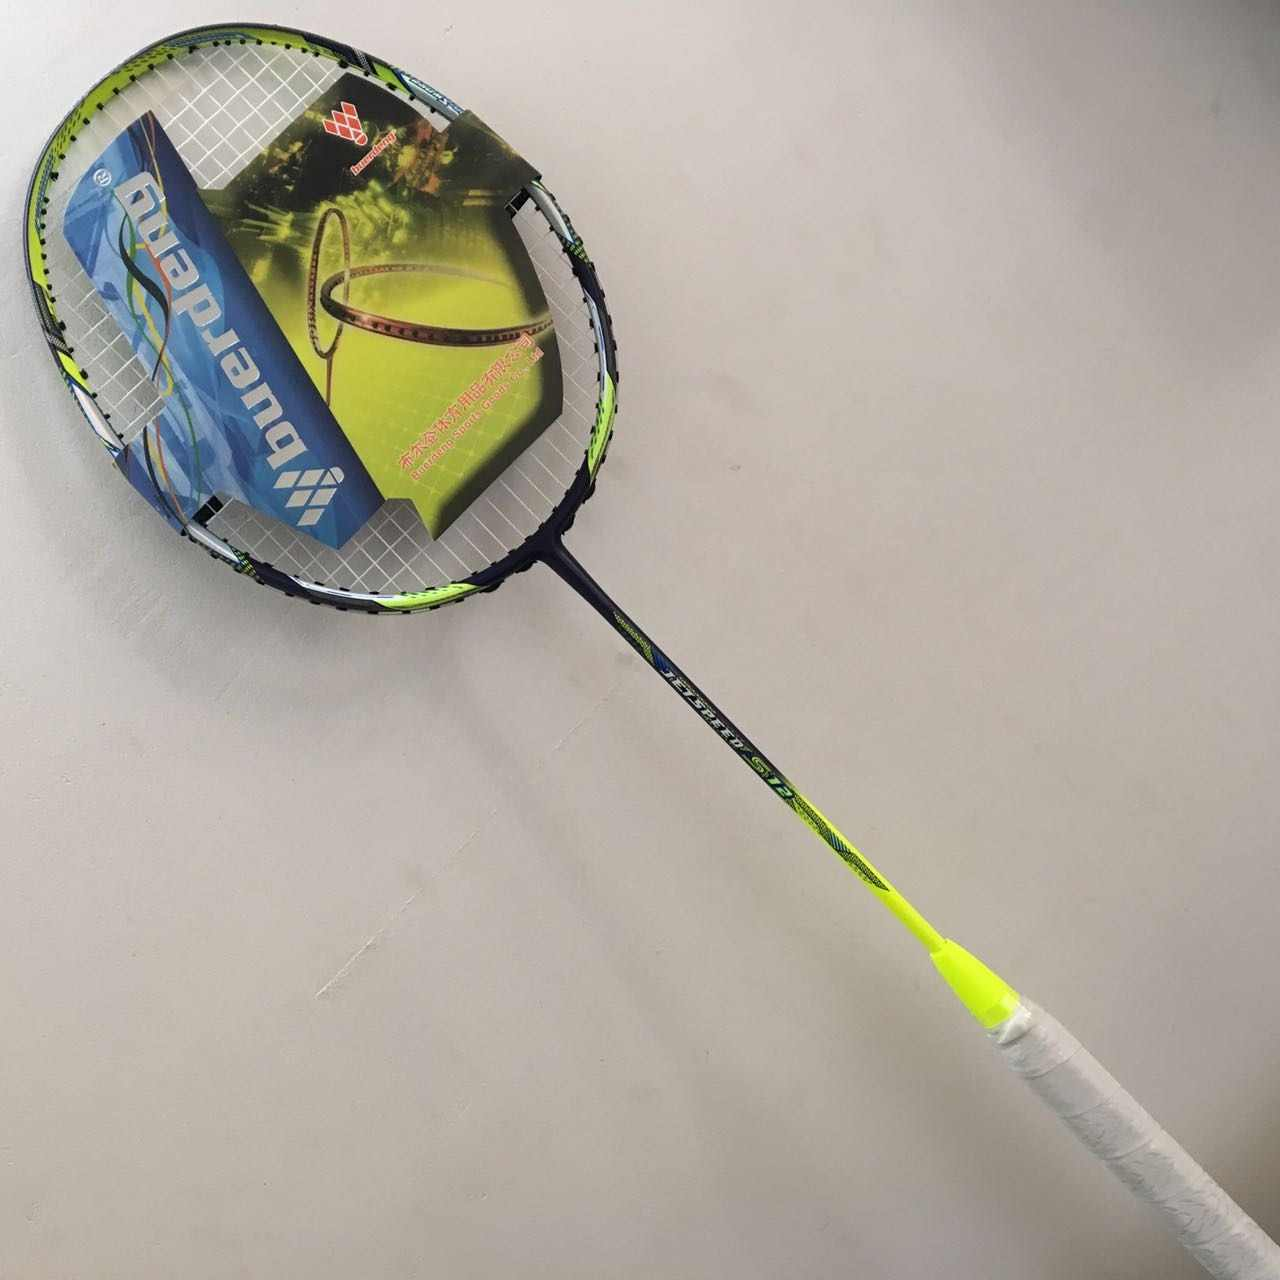 Hot men single badminton racket Jetspeed s12 badminton racket prestrung carbon badminton raquette with badminton grip jetspeed